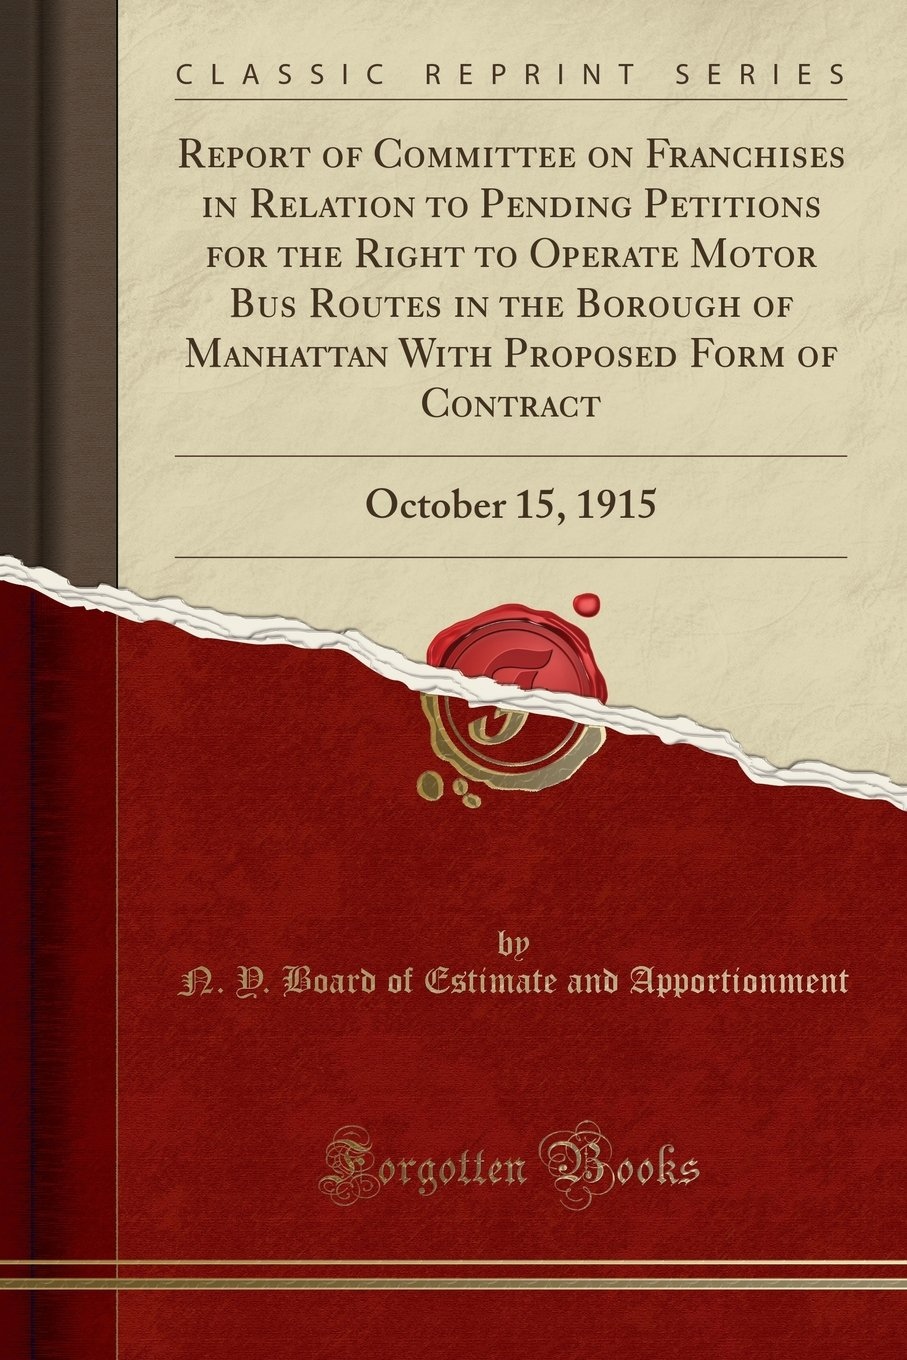 Download Report of Committee on Franchises in Relation to Pending Petitions for the Right to Operate Motor Bus Routes in the Borough of Manhattan with Proposed ... Contract: October 15, 1915 (Classic Reprint) ebook